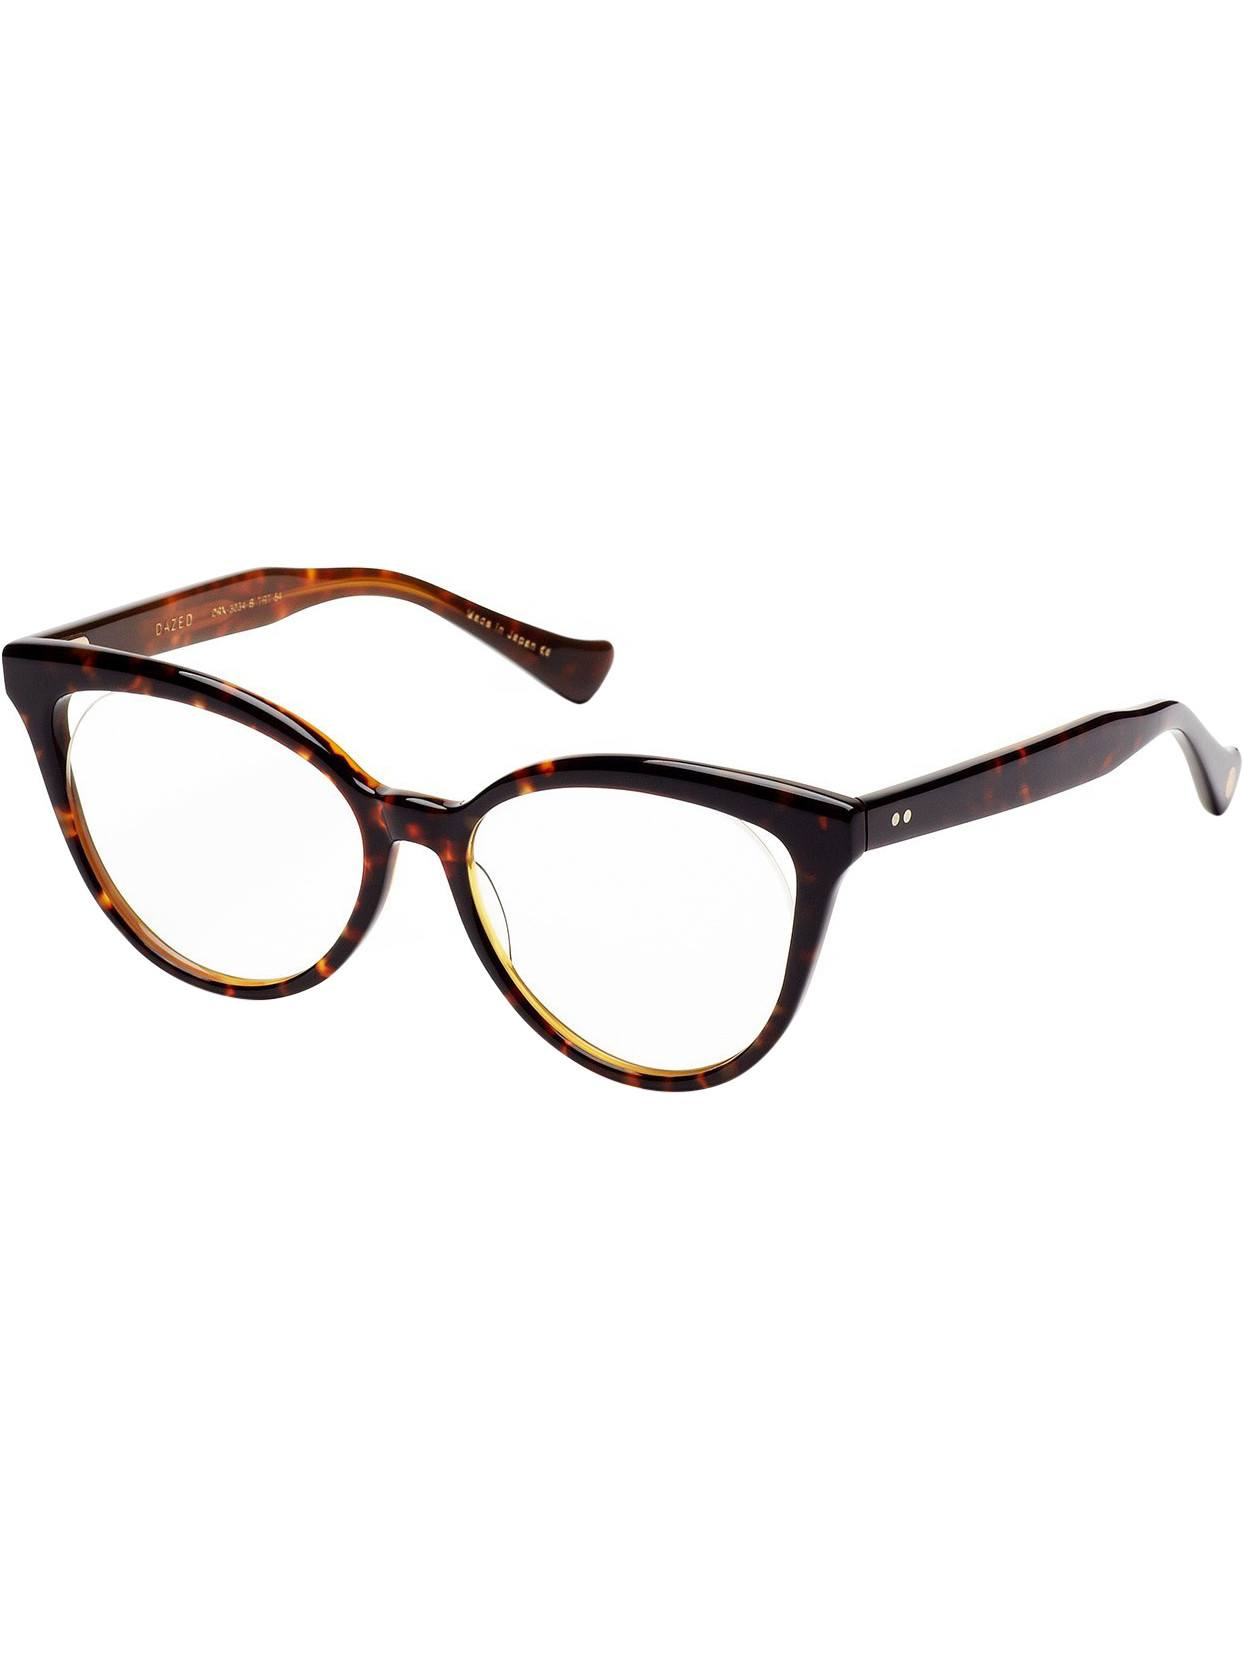 Optical Frame - Dita Dazed-DRX-3034-B Glasses